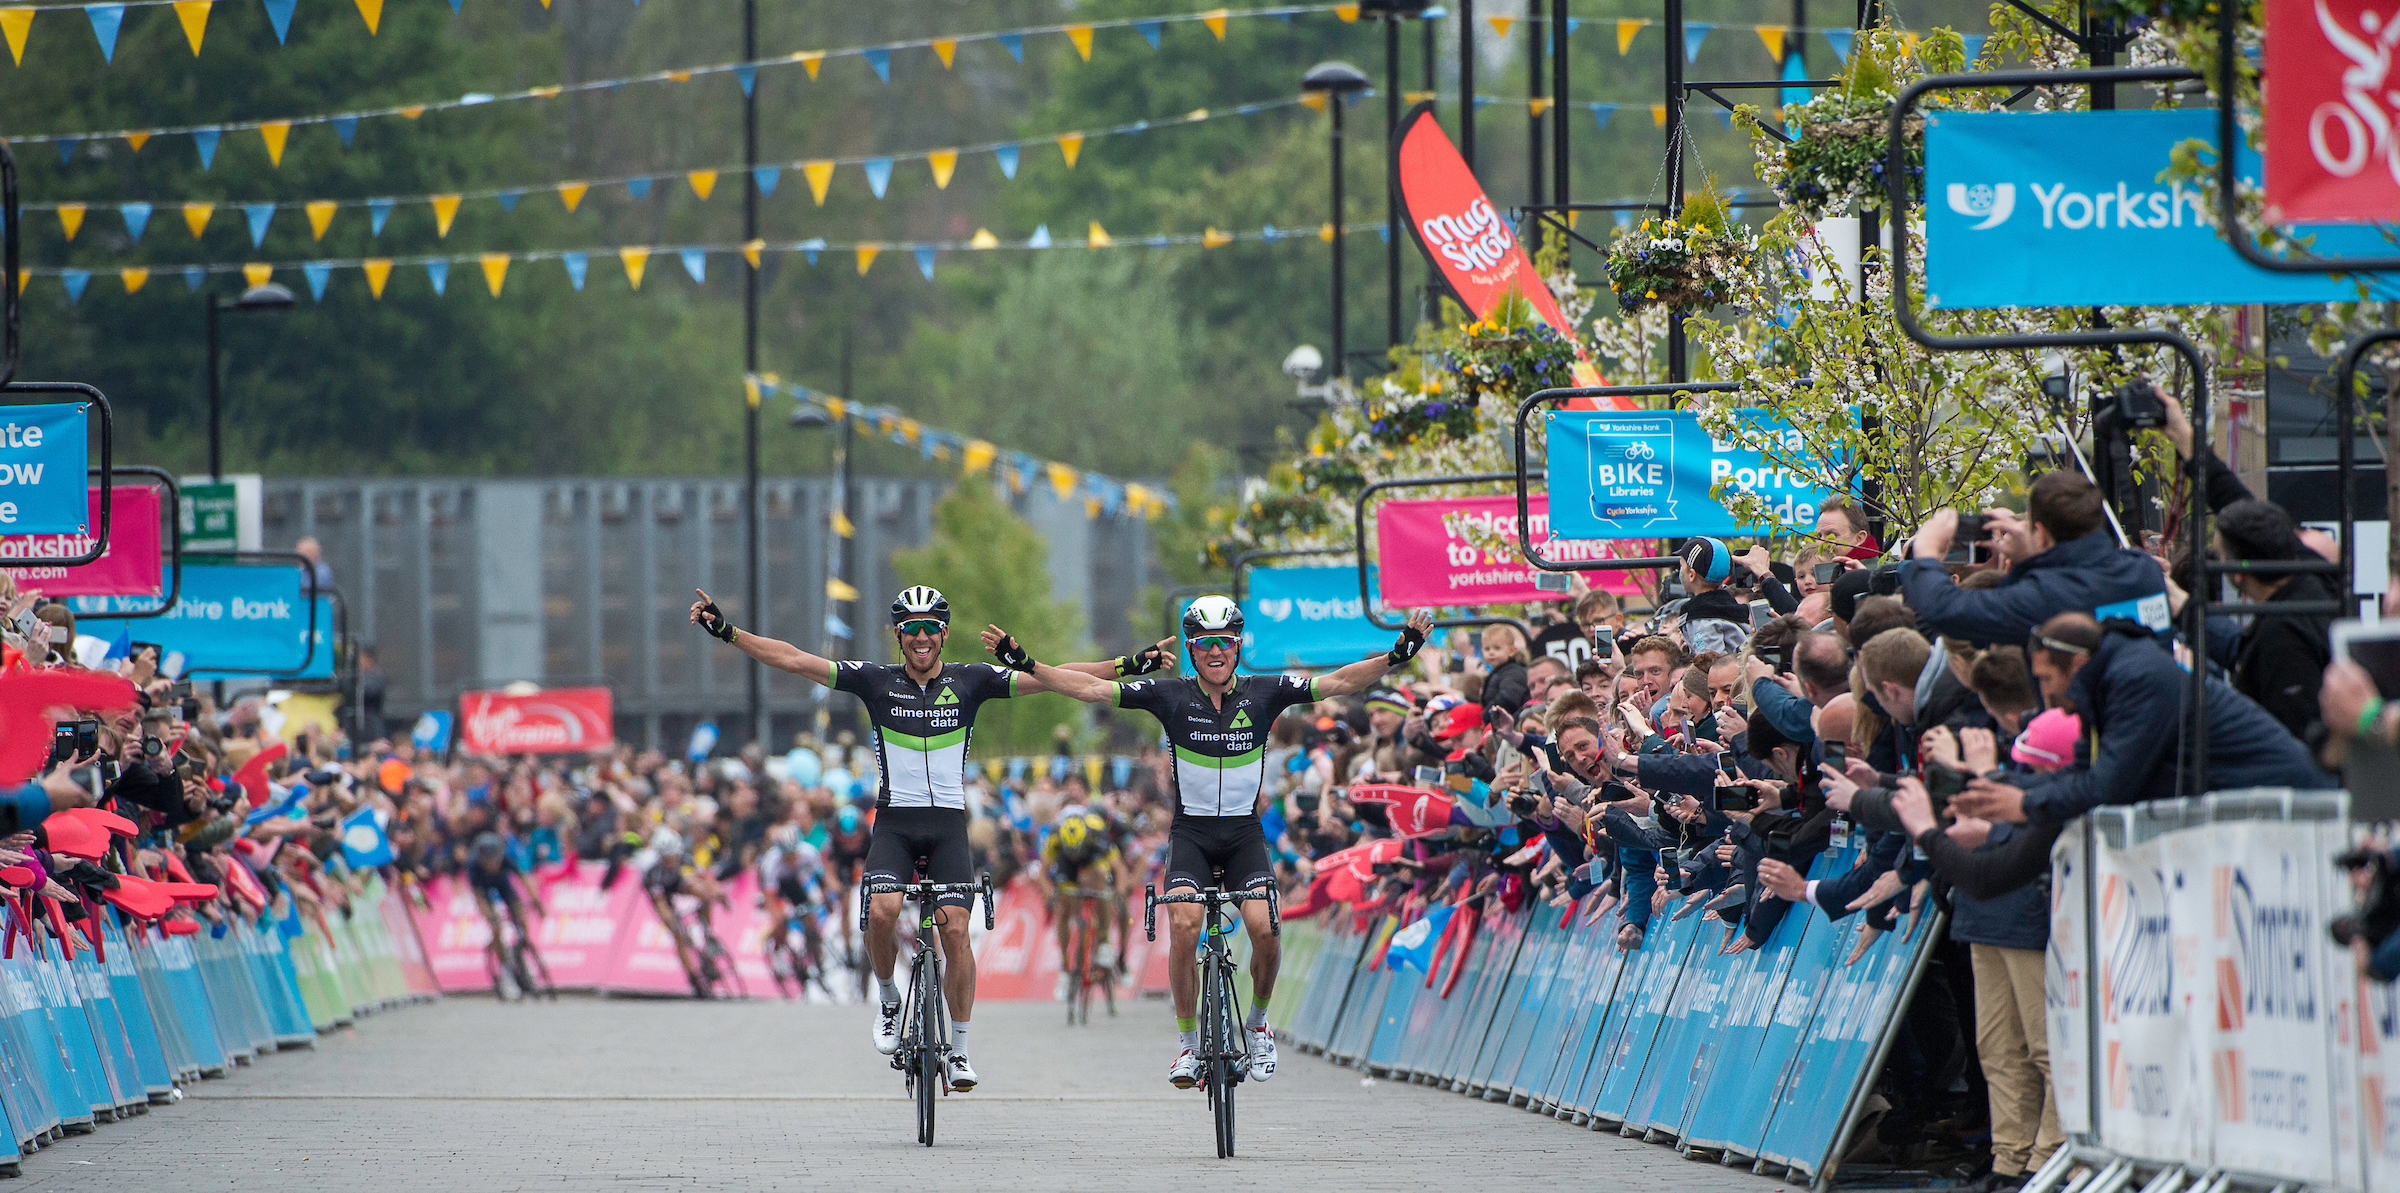 Serge Pauwels and Omar Fraile crossing the finishing line of the 2017 Tour de Yorkshire. SWPix.com